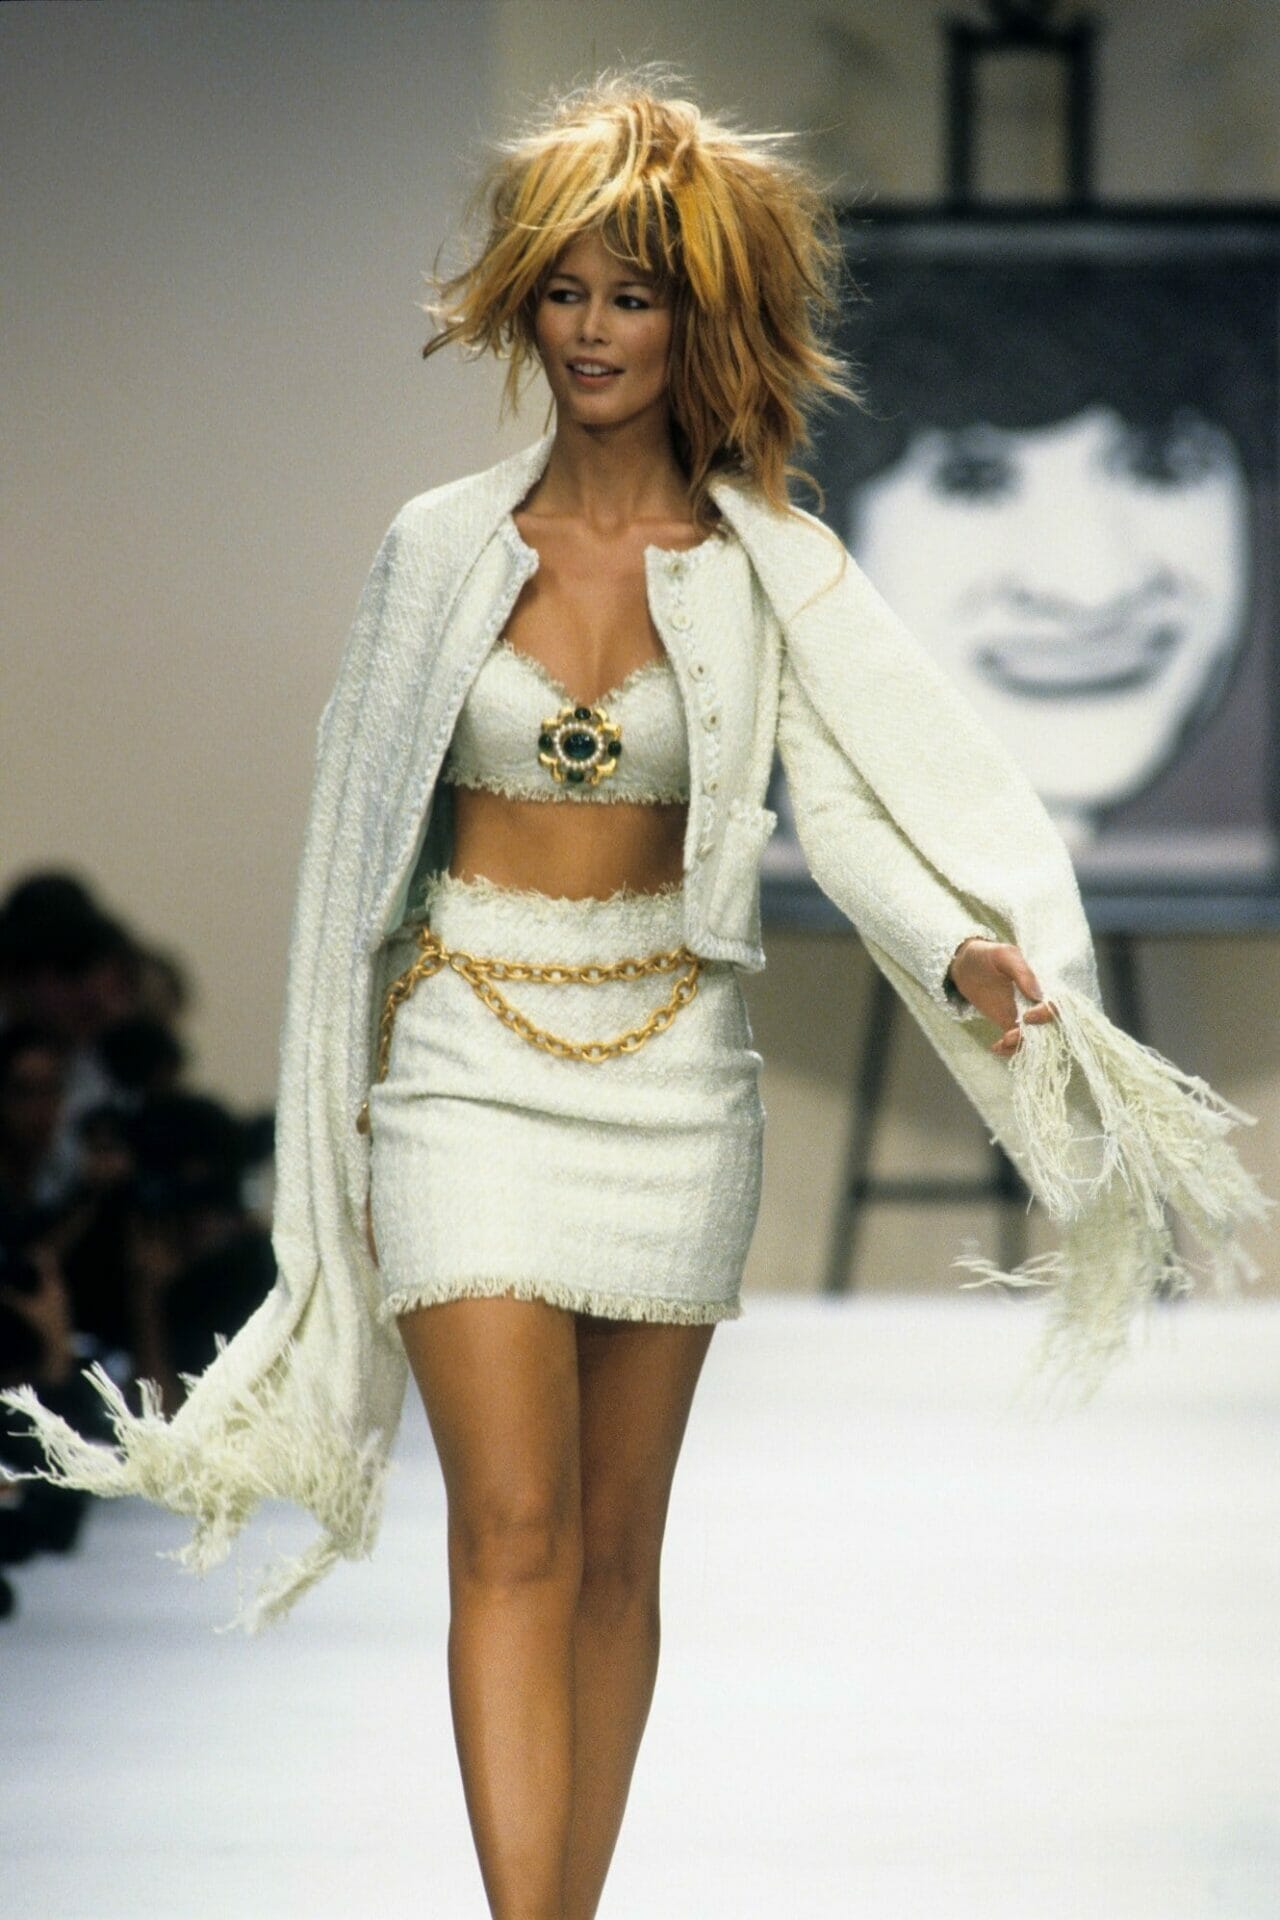 CLAUDIA SCHIFFER. CHANEL READY-TO-WEAR SPRING-SUMMER 1994. RUNWAY MAGAZINE ® Collections